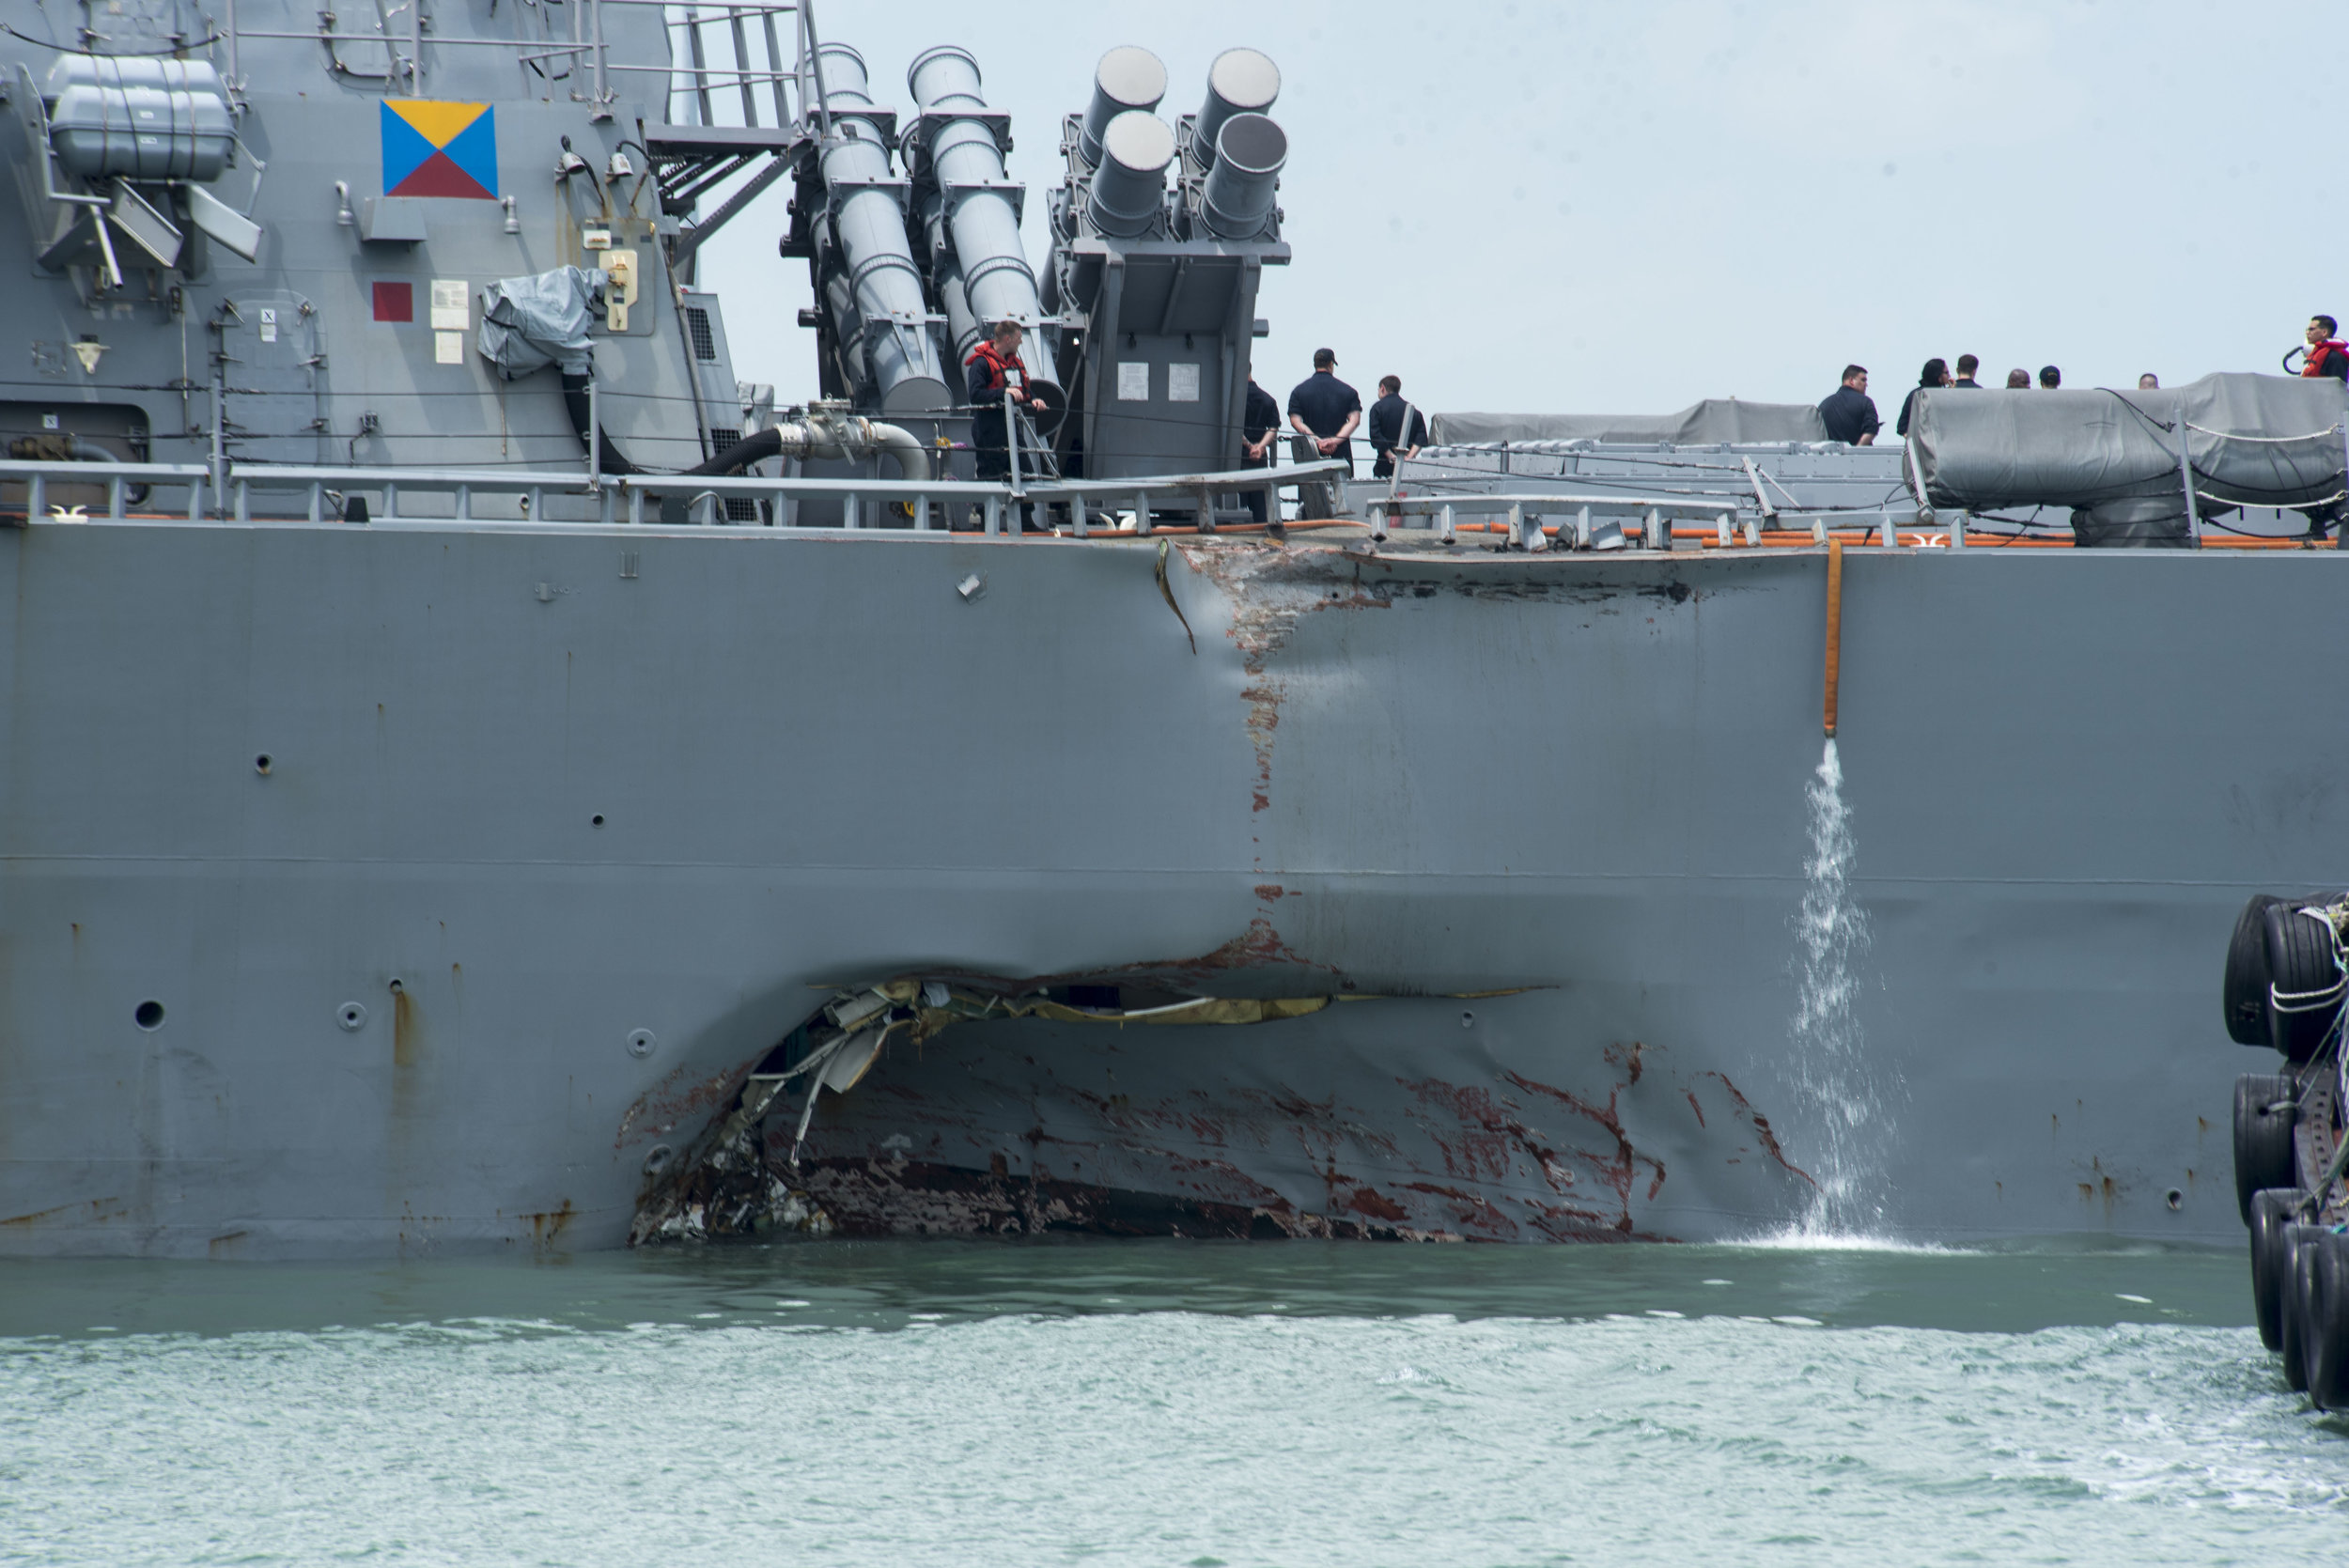 Aug. 21, 2017--Damage to the port side of the guided-missile destroyer USS John S. McCain (DDG 56) as it steers towards Changi Naval Base, Republic of Singapore, following a collision with the merchant vessel Alnic MC. Photo by Mass Communication Specialist 2nd Class Joshua Fulton. The appearance of U.S. Department of Defense (DoD) visual information does not imply or constitute DoD endorsement.